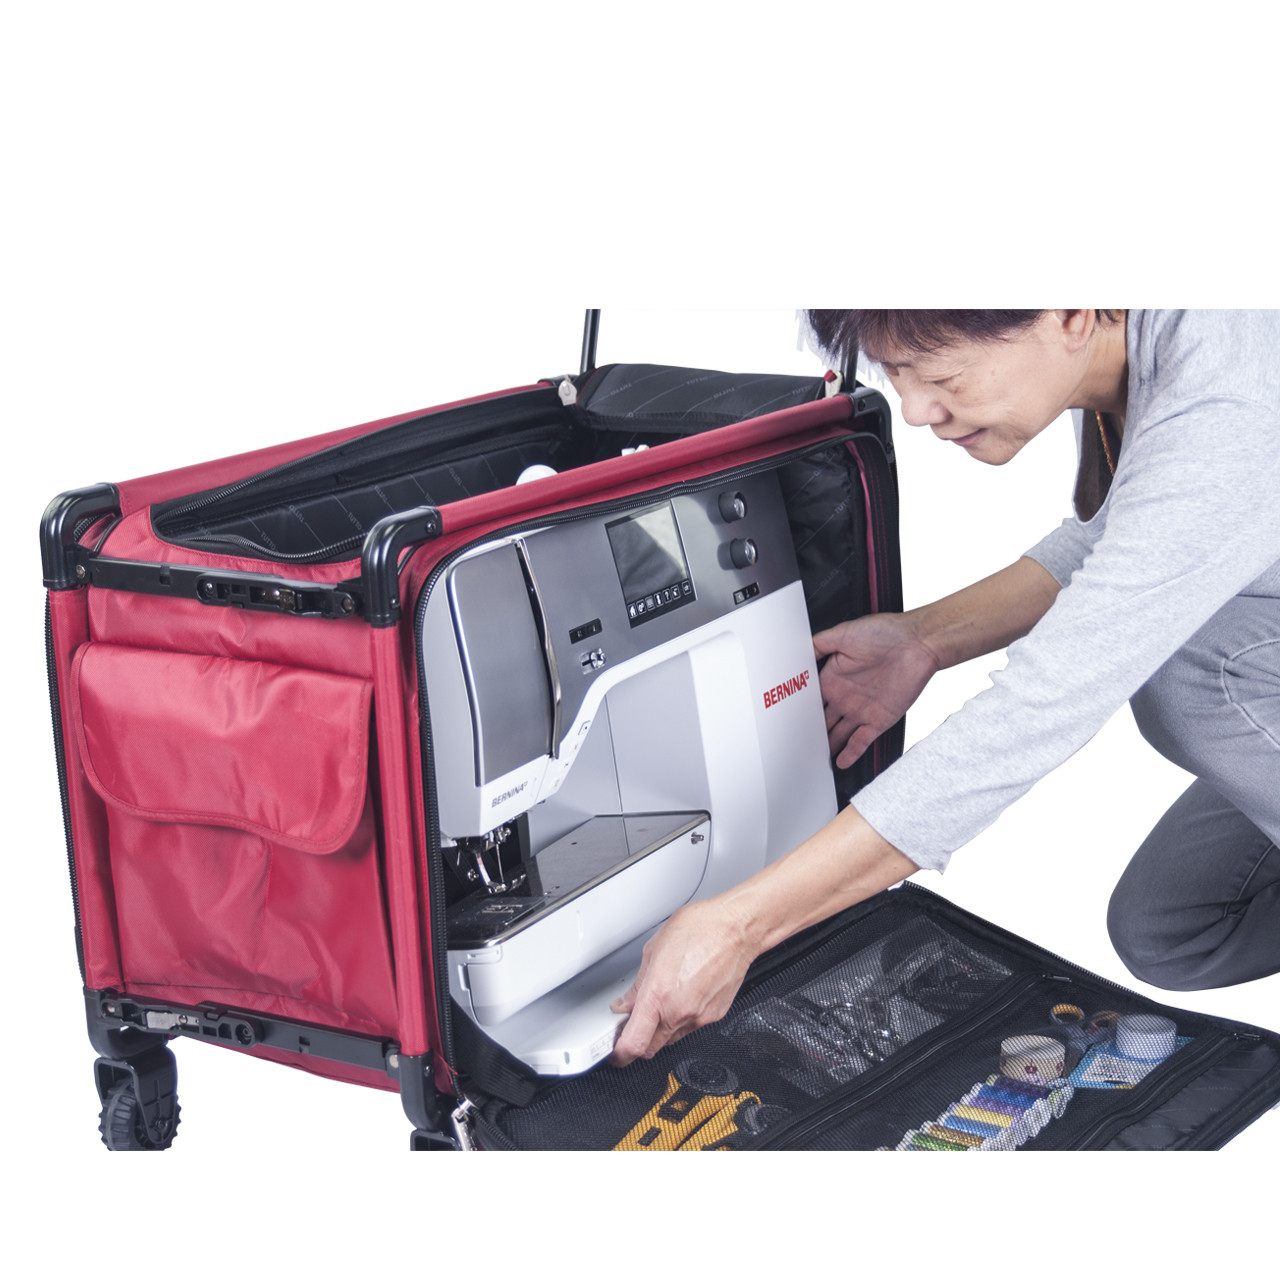 For easier loading, place machine through front opening.